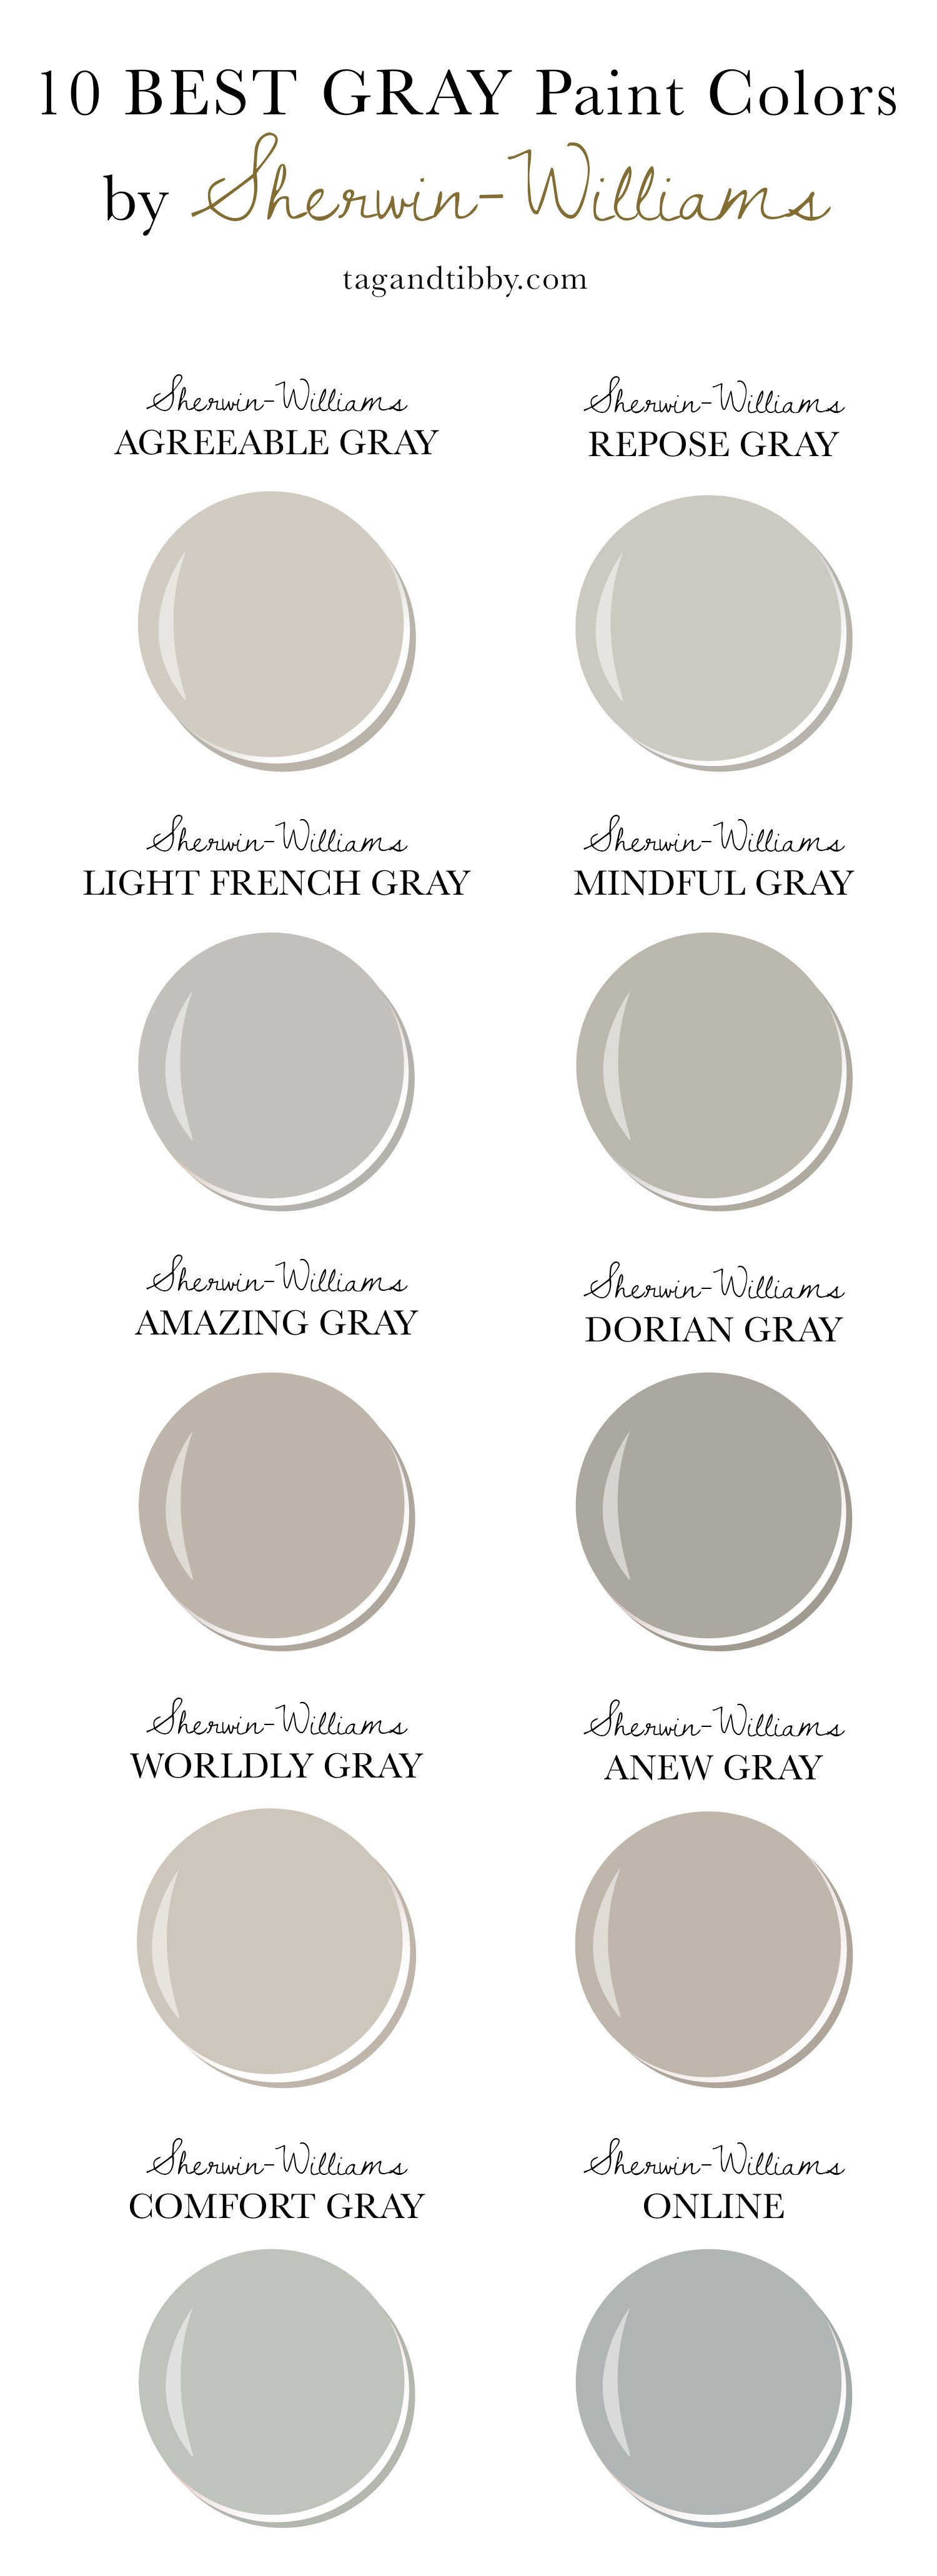 10 best gray paint colors by sherwin williams in 2020 on 10 most popular paint colors id=61157